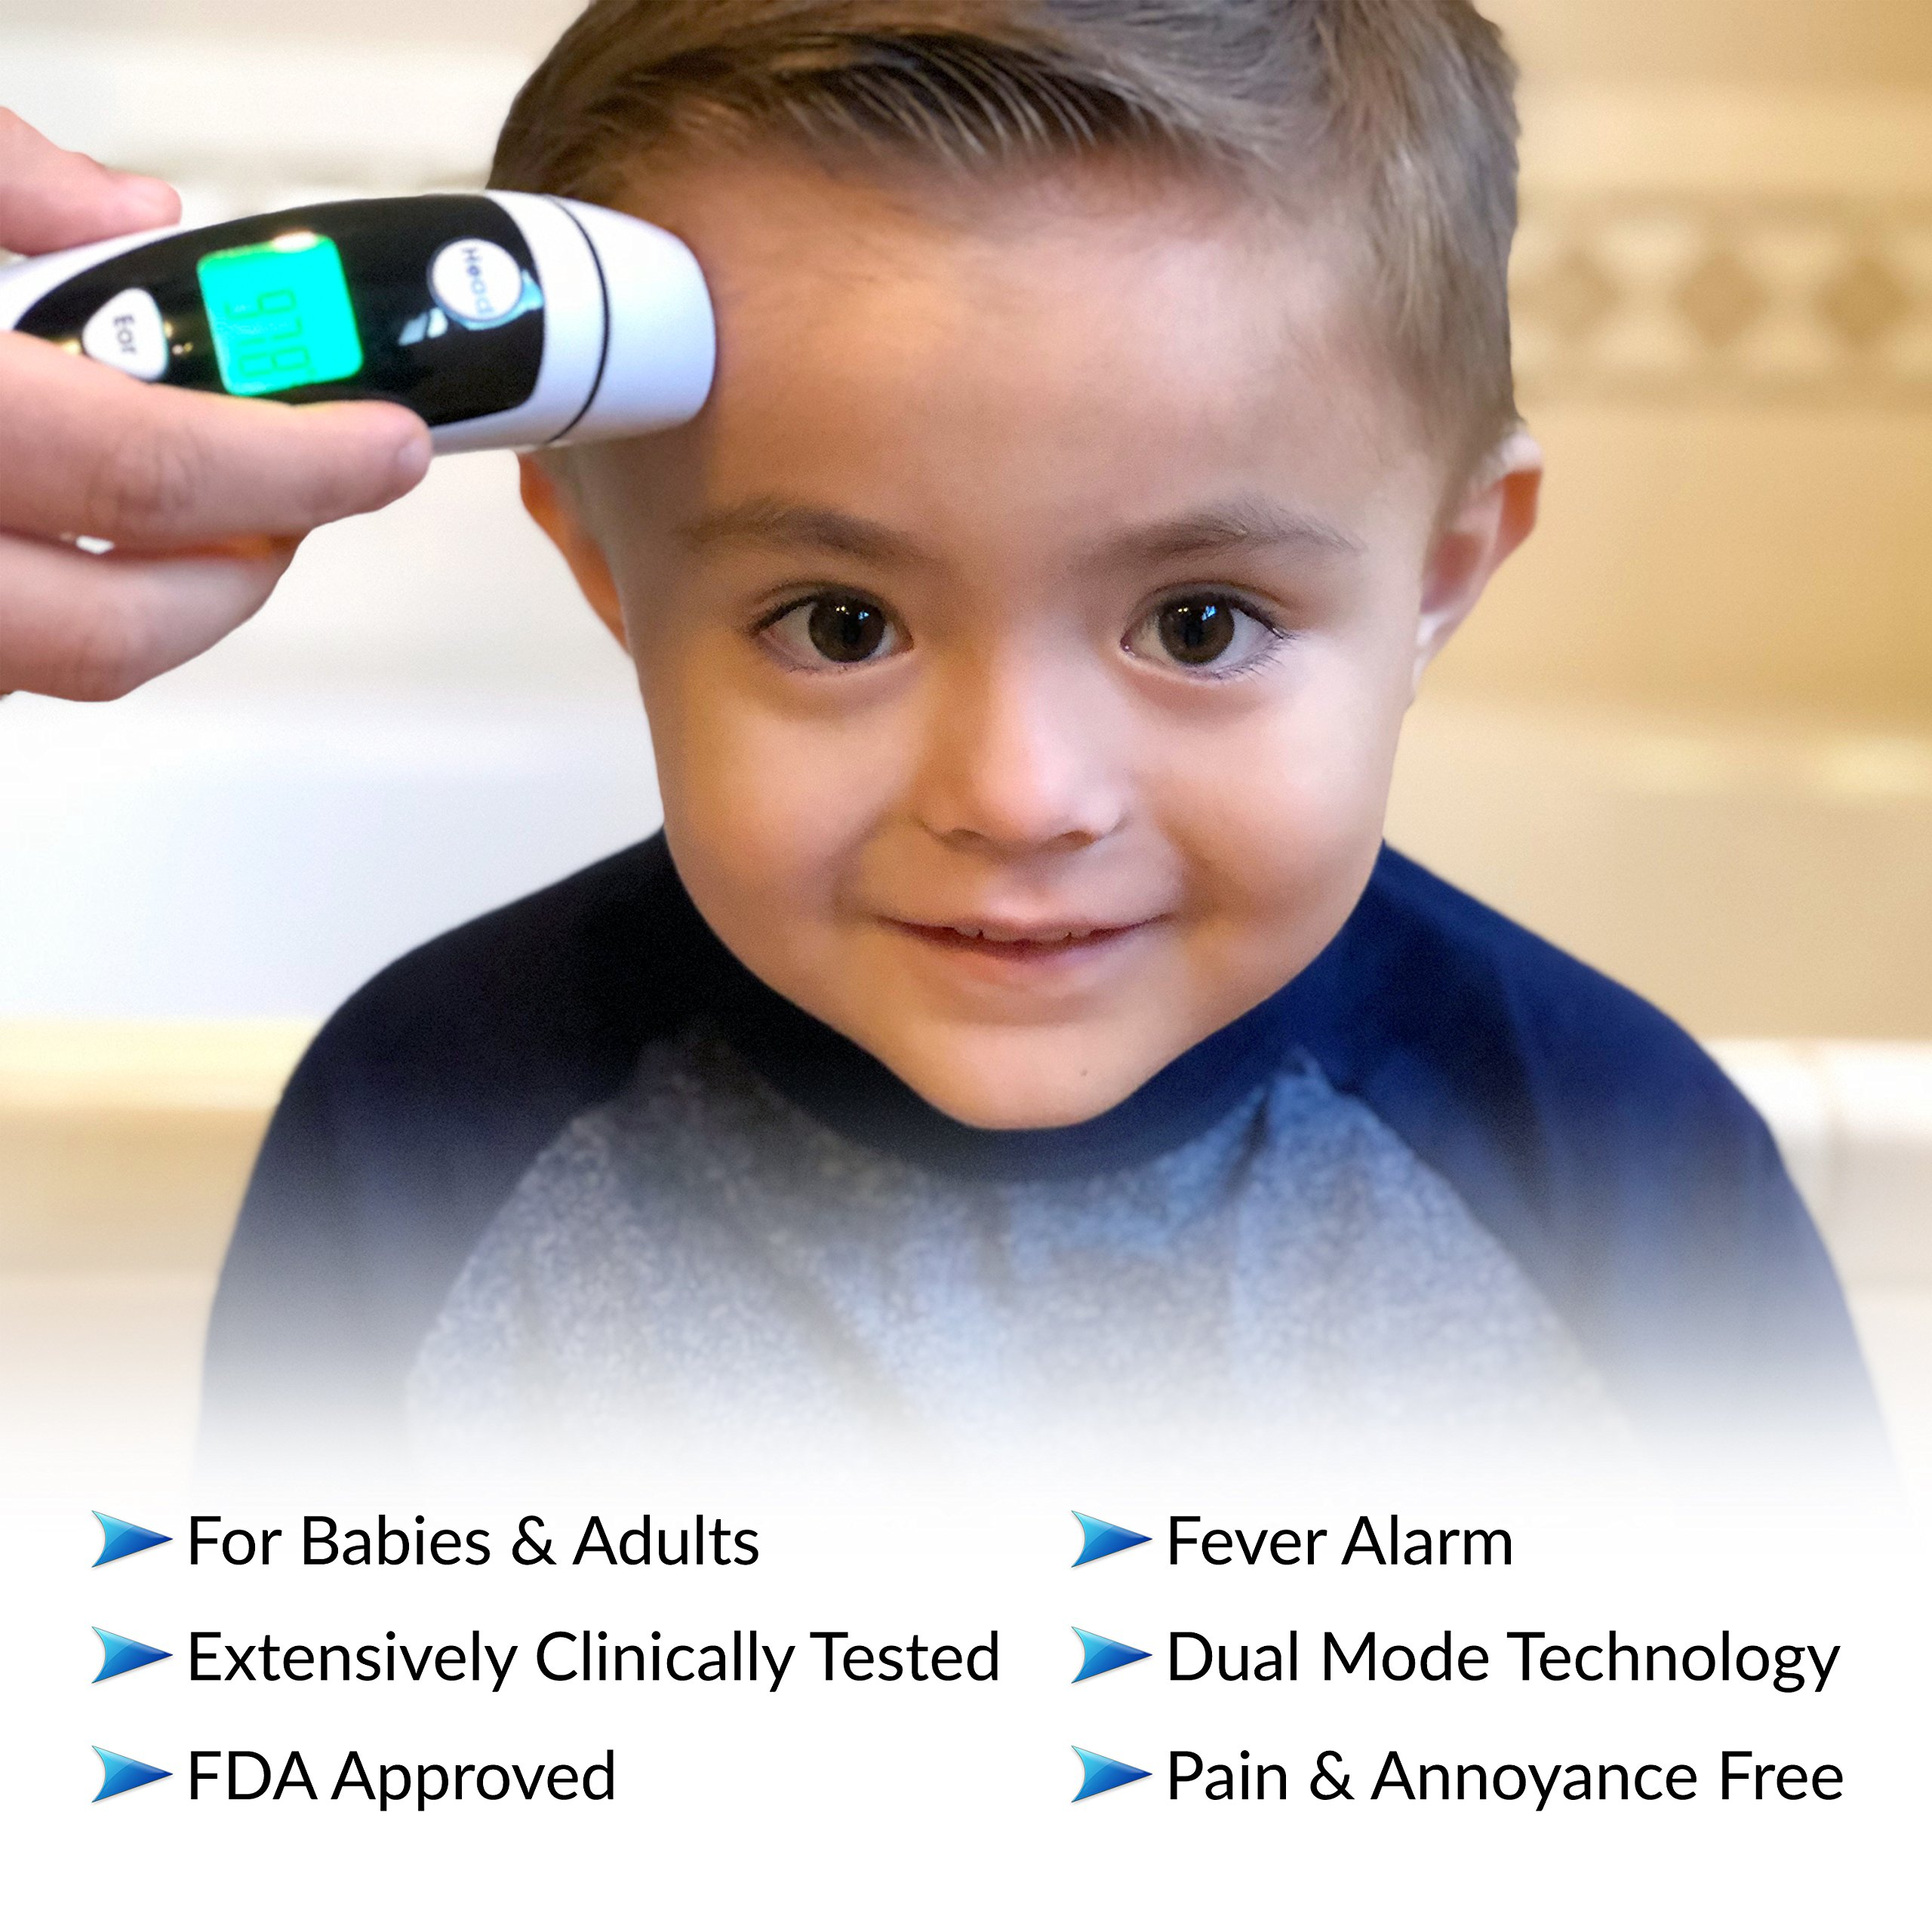 Champion IR - Medical Ear Thermometer With Forehead Function - Infared Technology & LCD Screen For Improved Accuracy by Champion IR (Image #6)